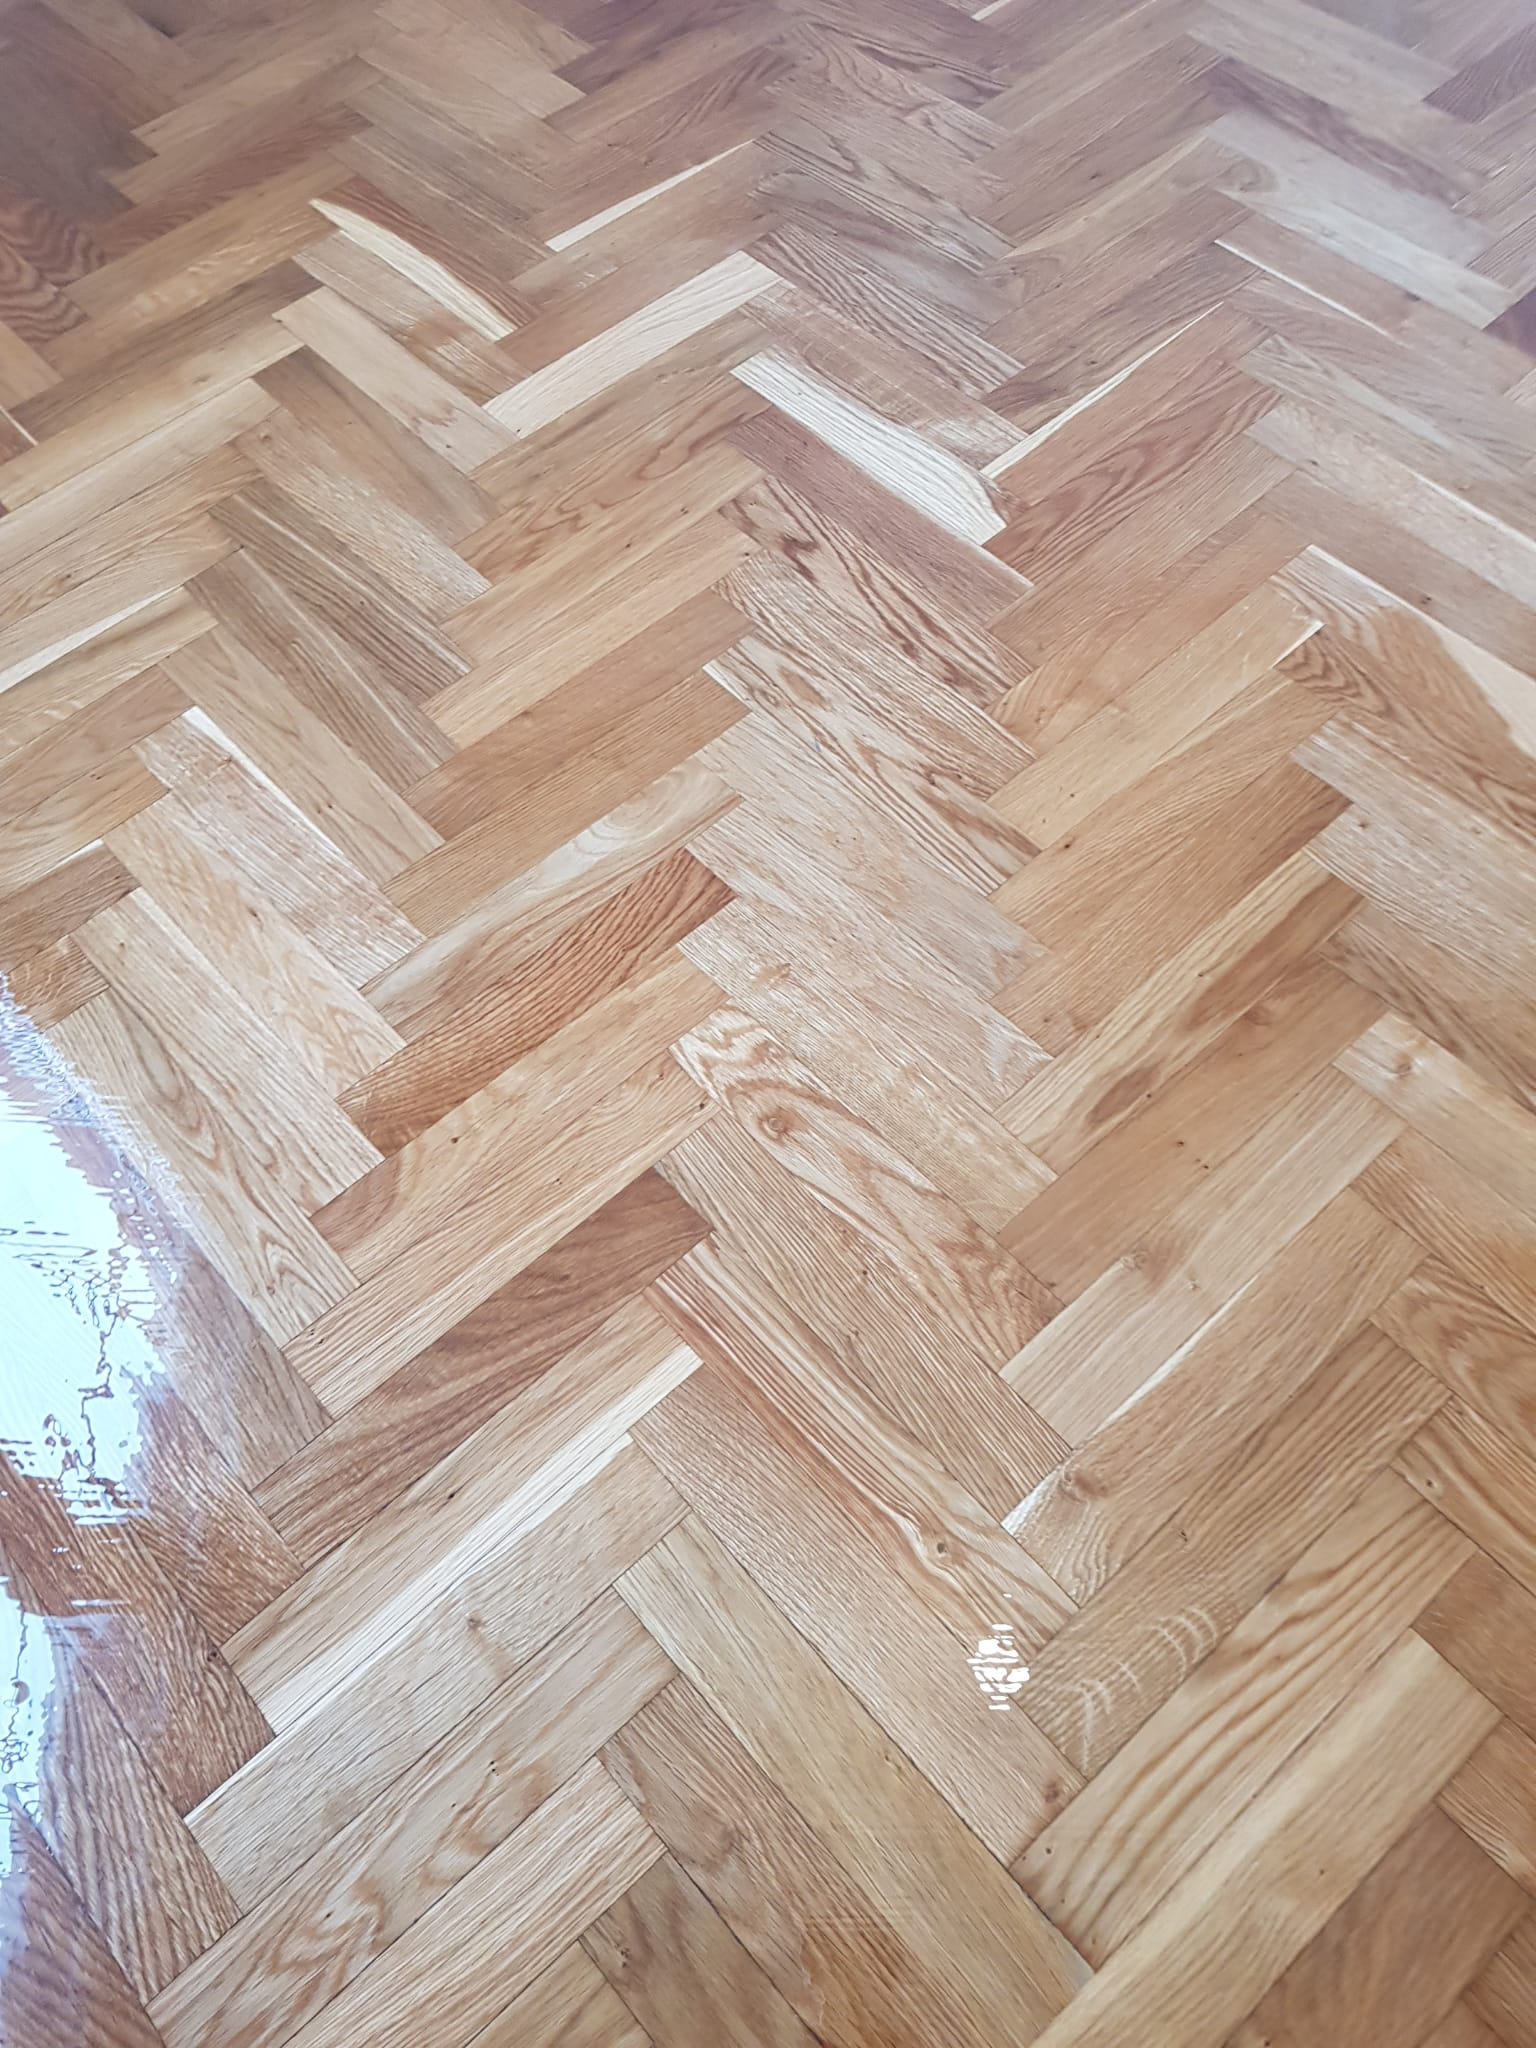 Parquet de Tablilla de Roble